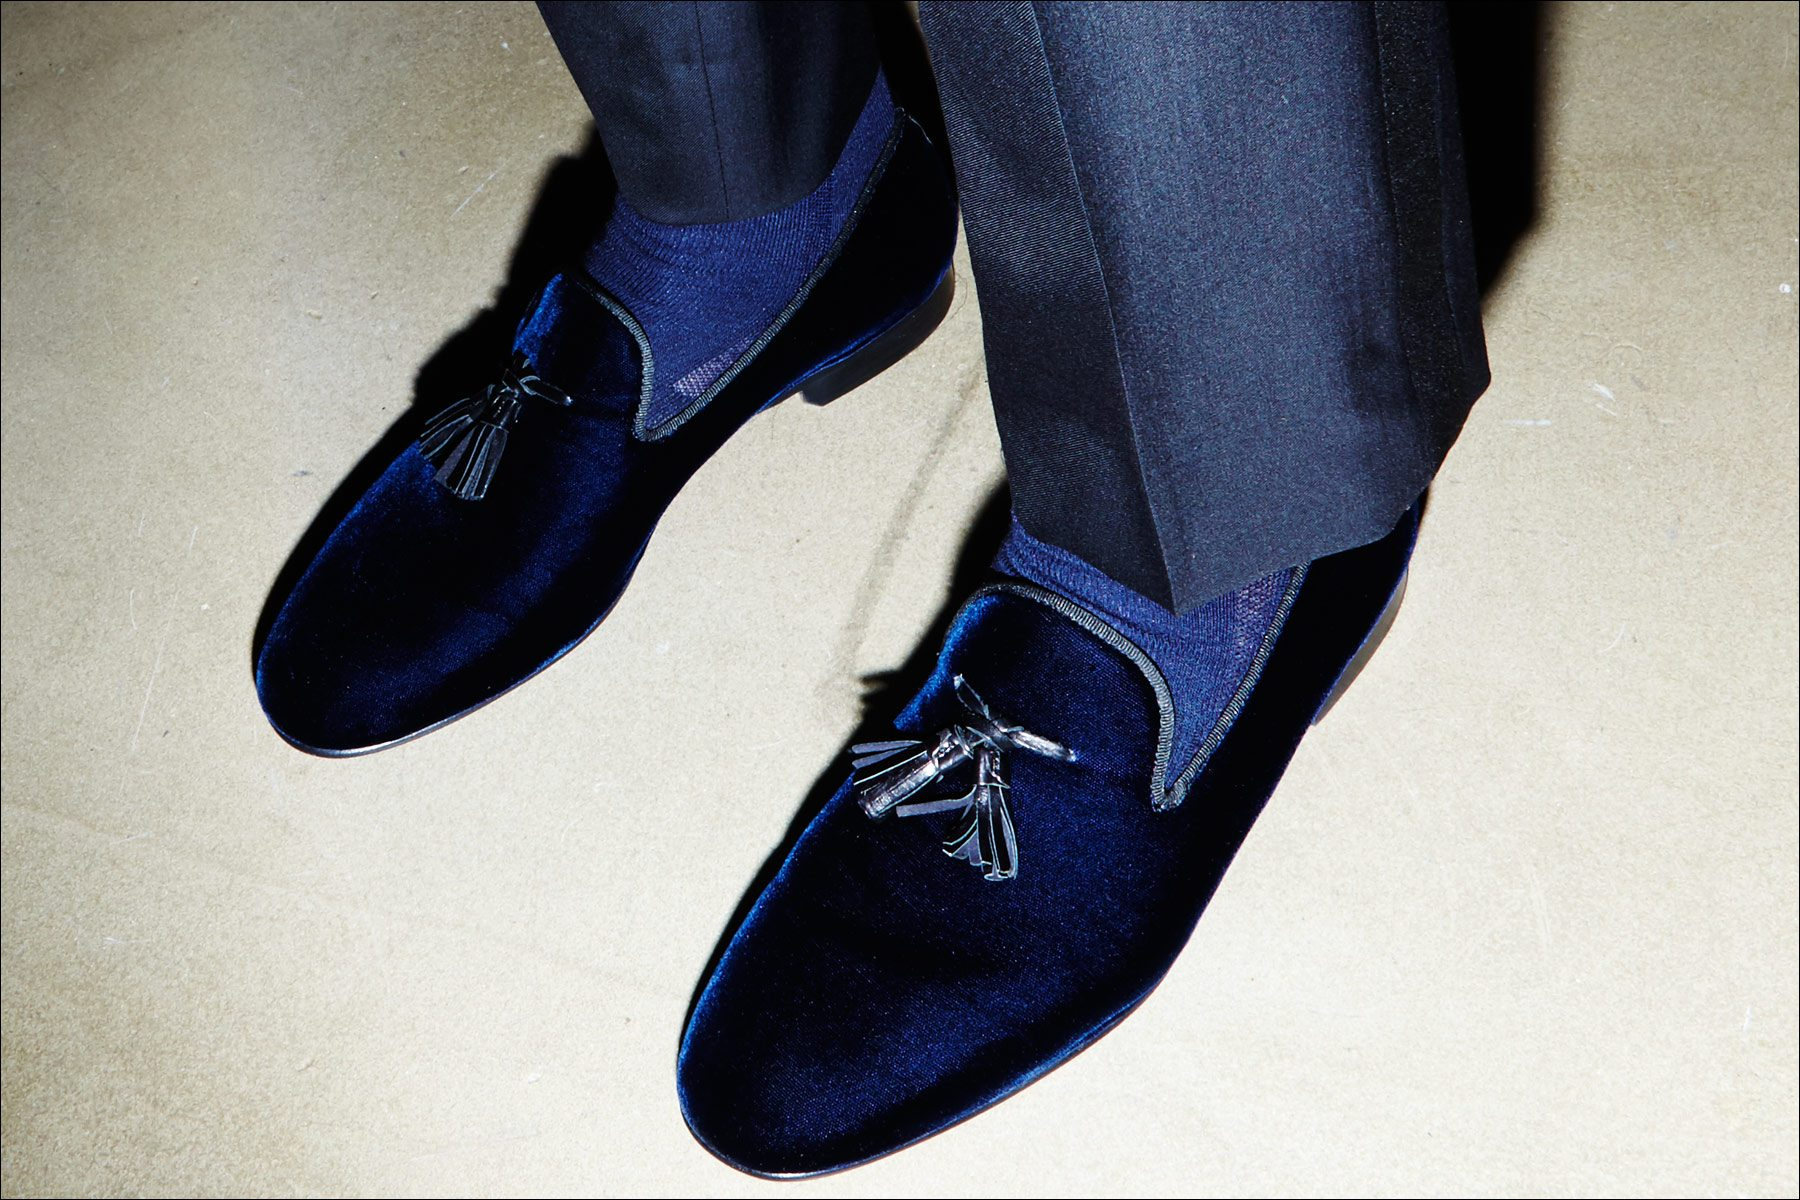 Blue tassel loafers from Johnson & Murphy, photographed backstage at the David Hart Fall/Winter 2017 menswear show. Photography by Alexander Thompson for Ponyboy magazine NY.